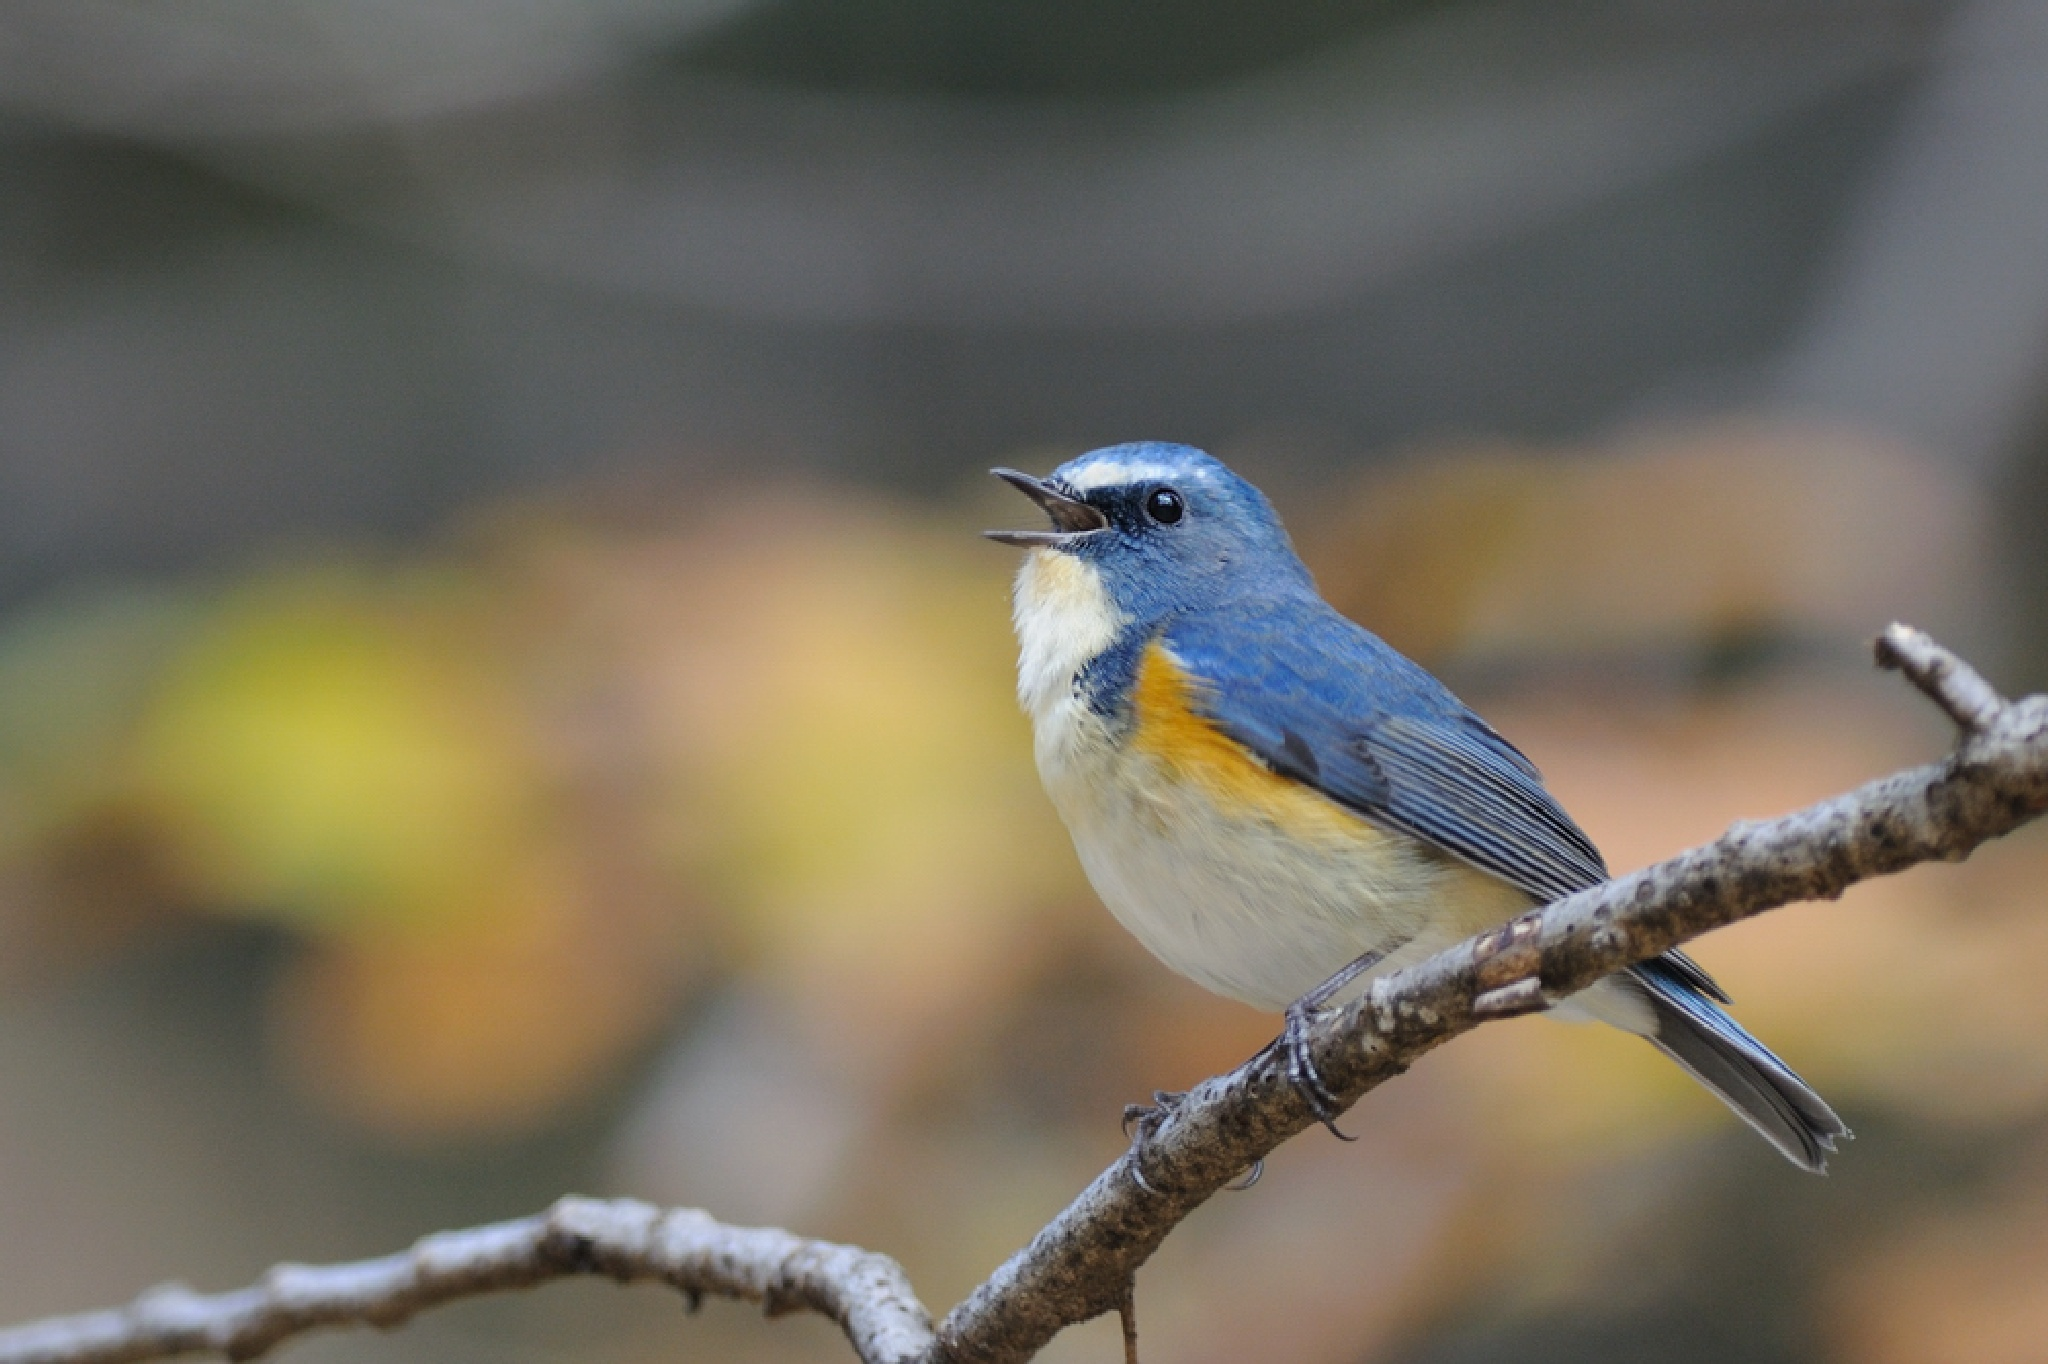 Red-flanked bluetail by Mubi.A